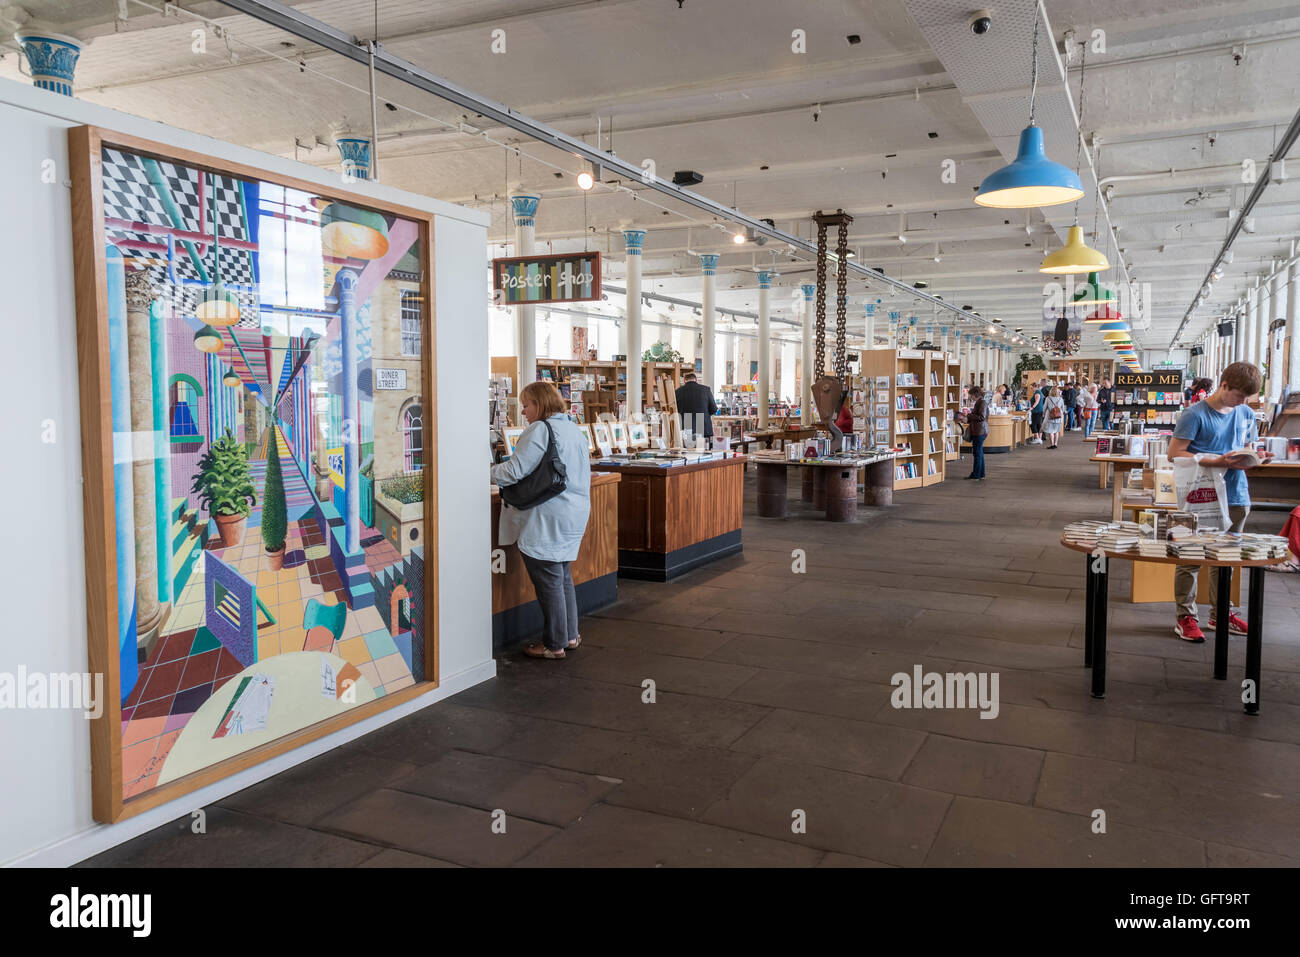 An interior of the Salt Gallery in Saltaire village, West Yorkshire. Home to a major exhibition of David Hockney - Stock Image